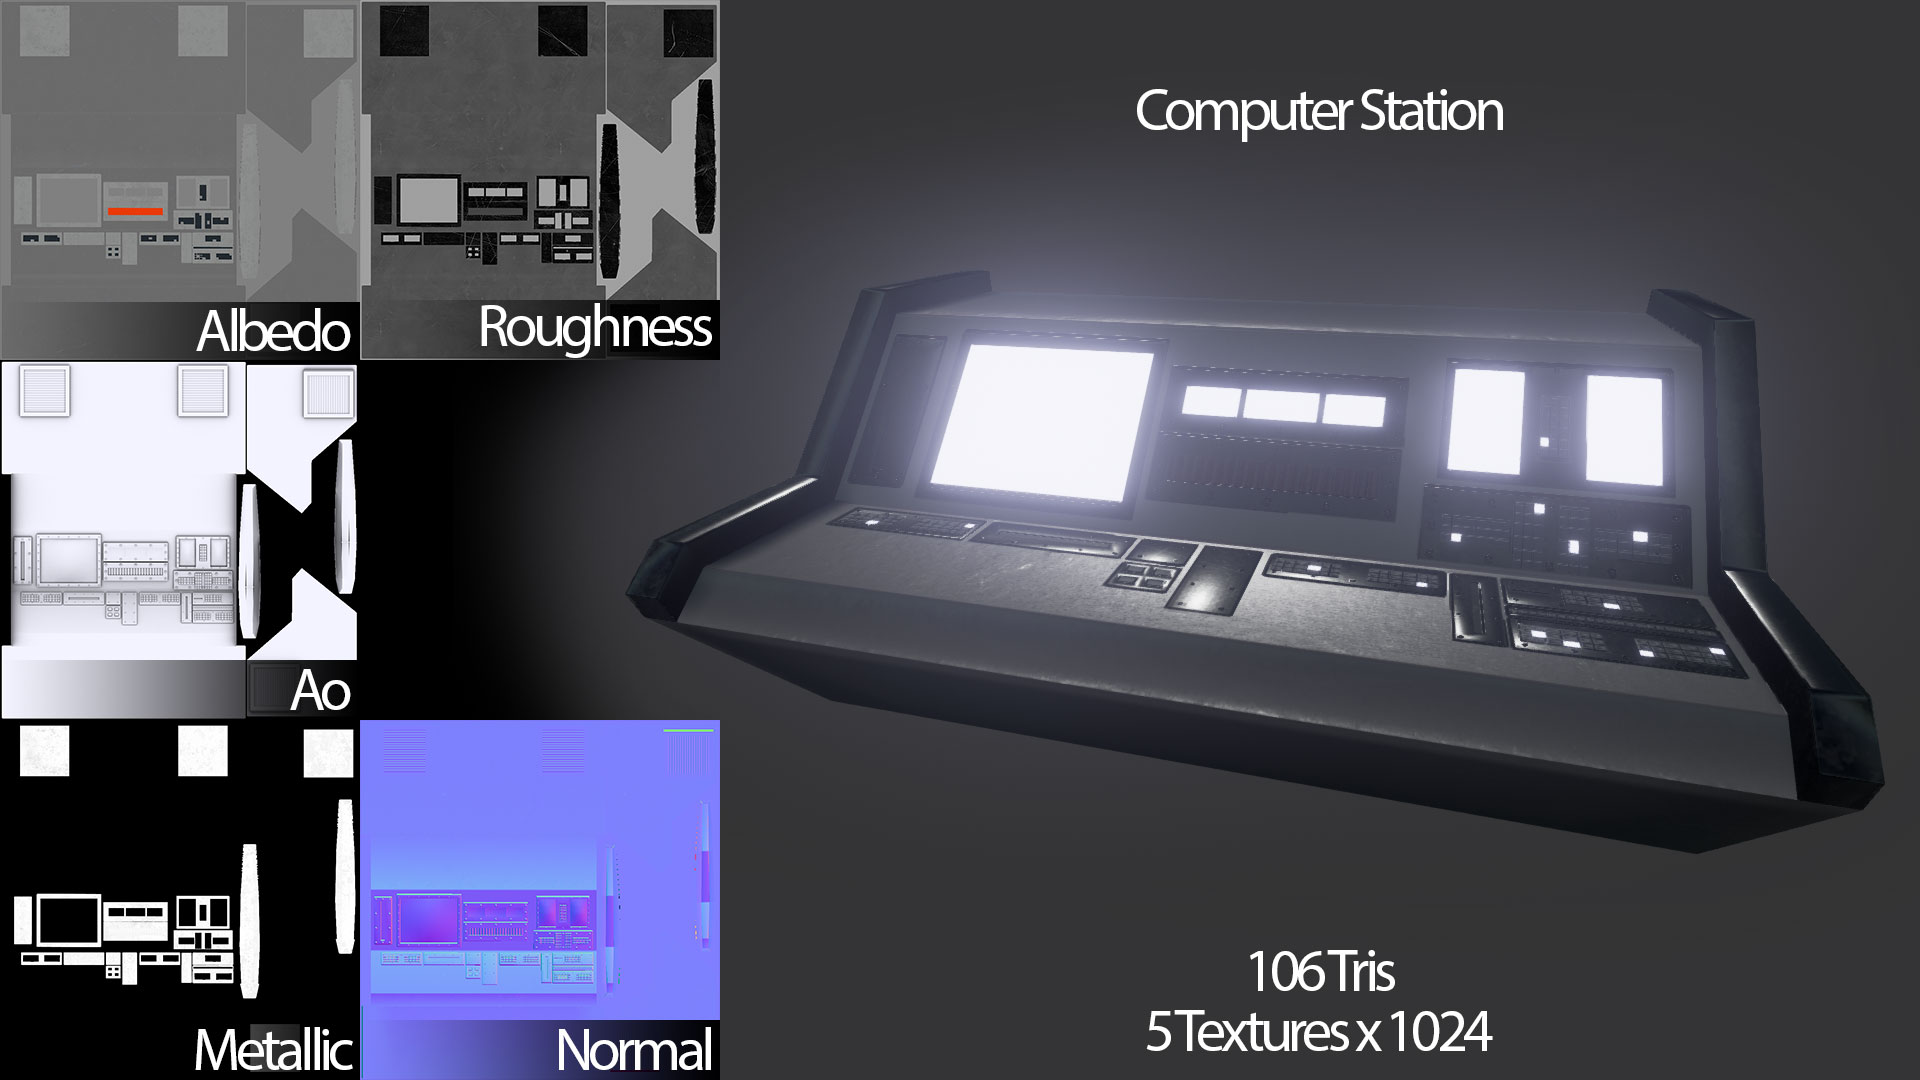 ComputerStation